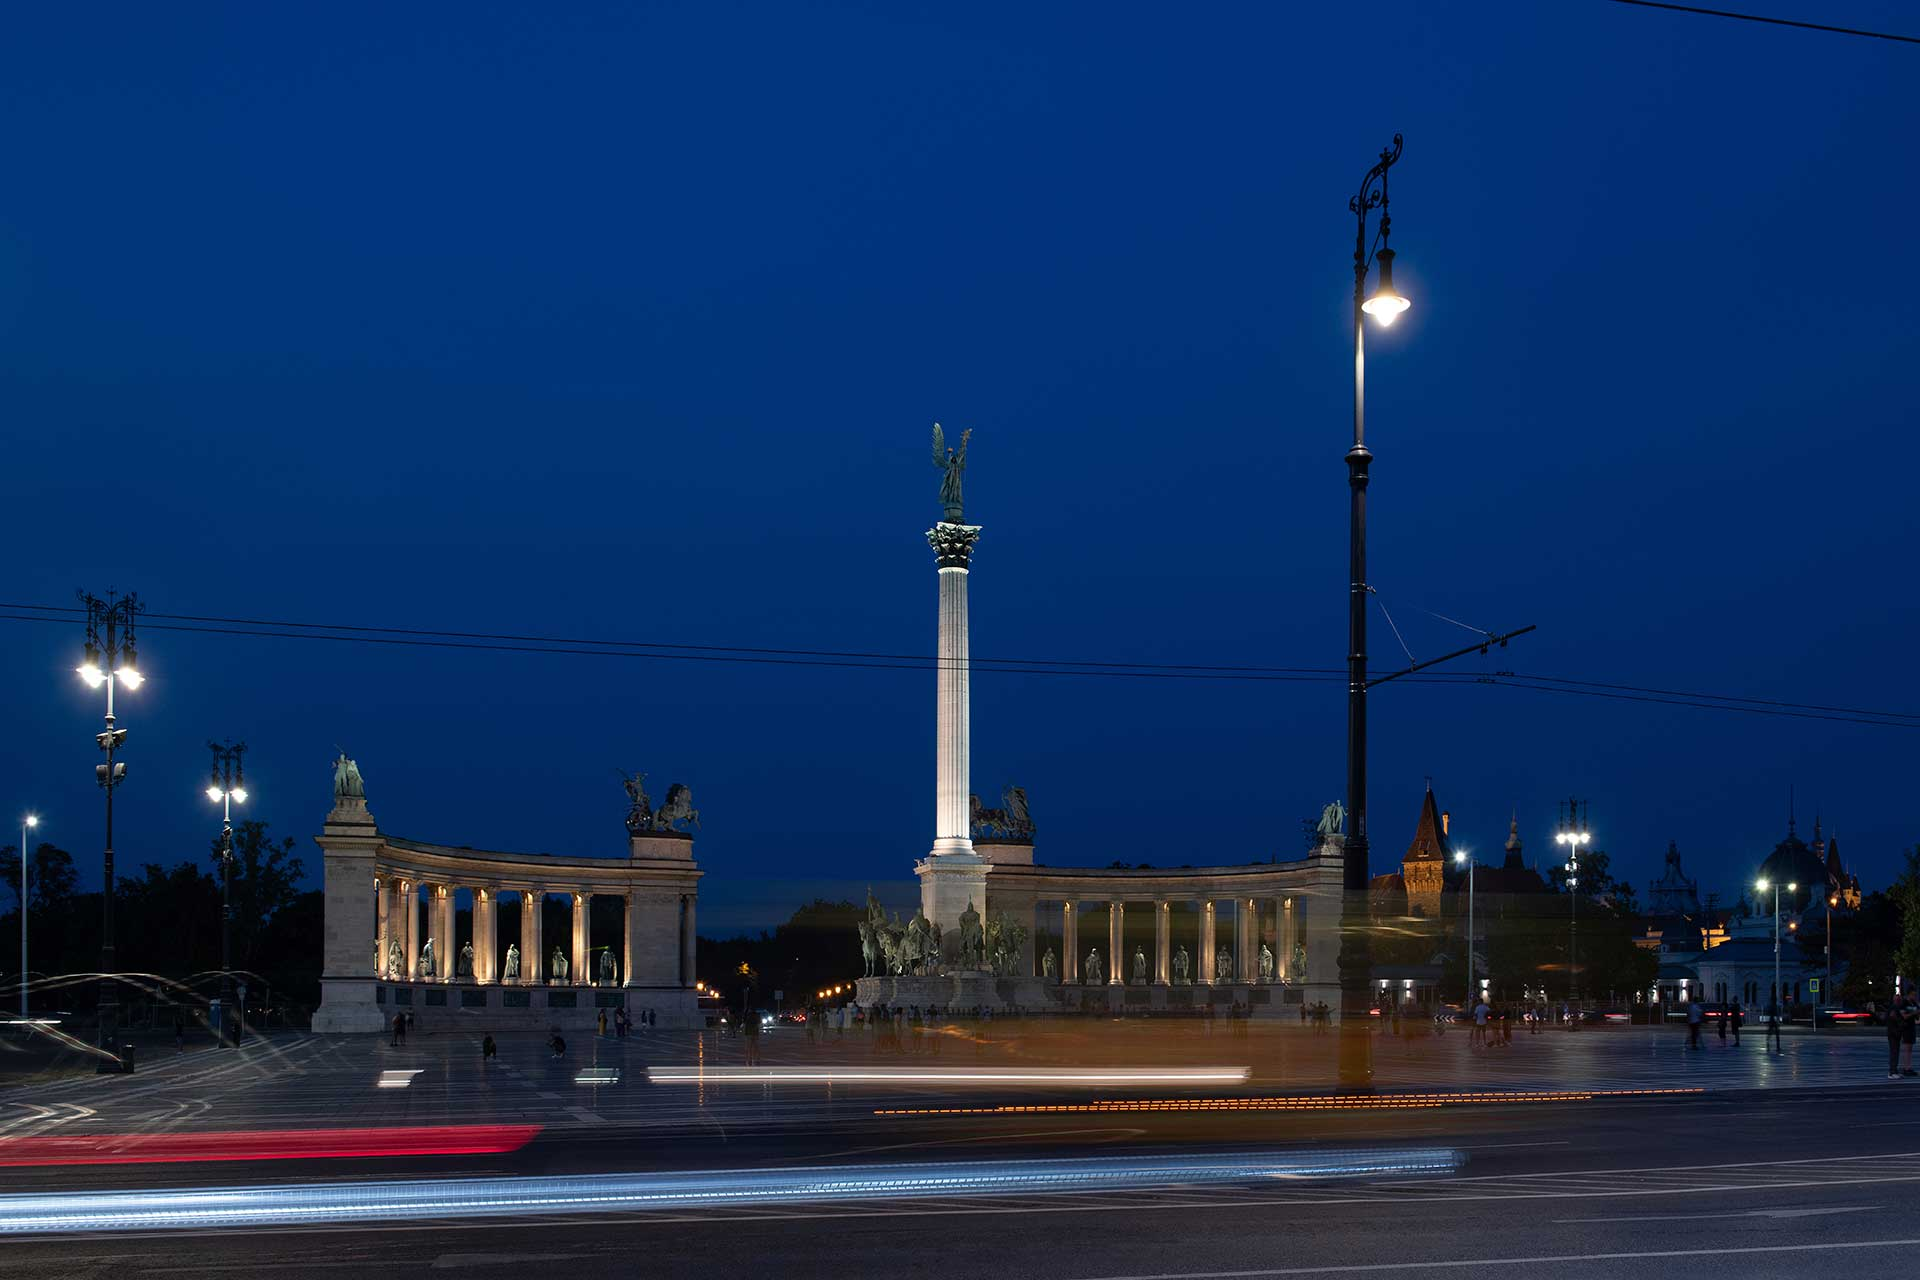 Kandelabra LED lanterns provide a white light to ensure safety on this busy axe in the Hungarian capital city